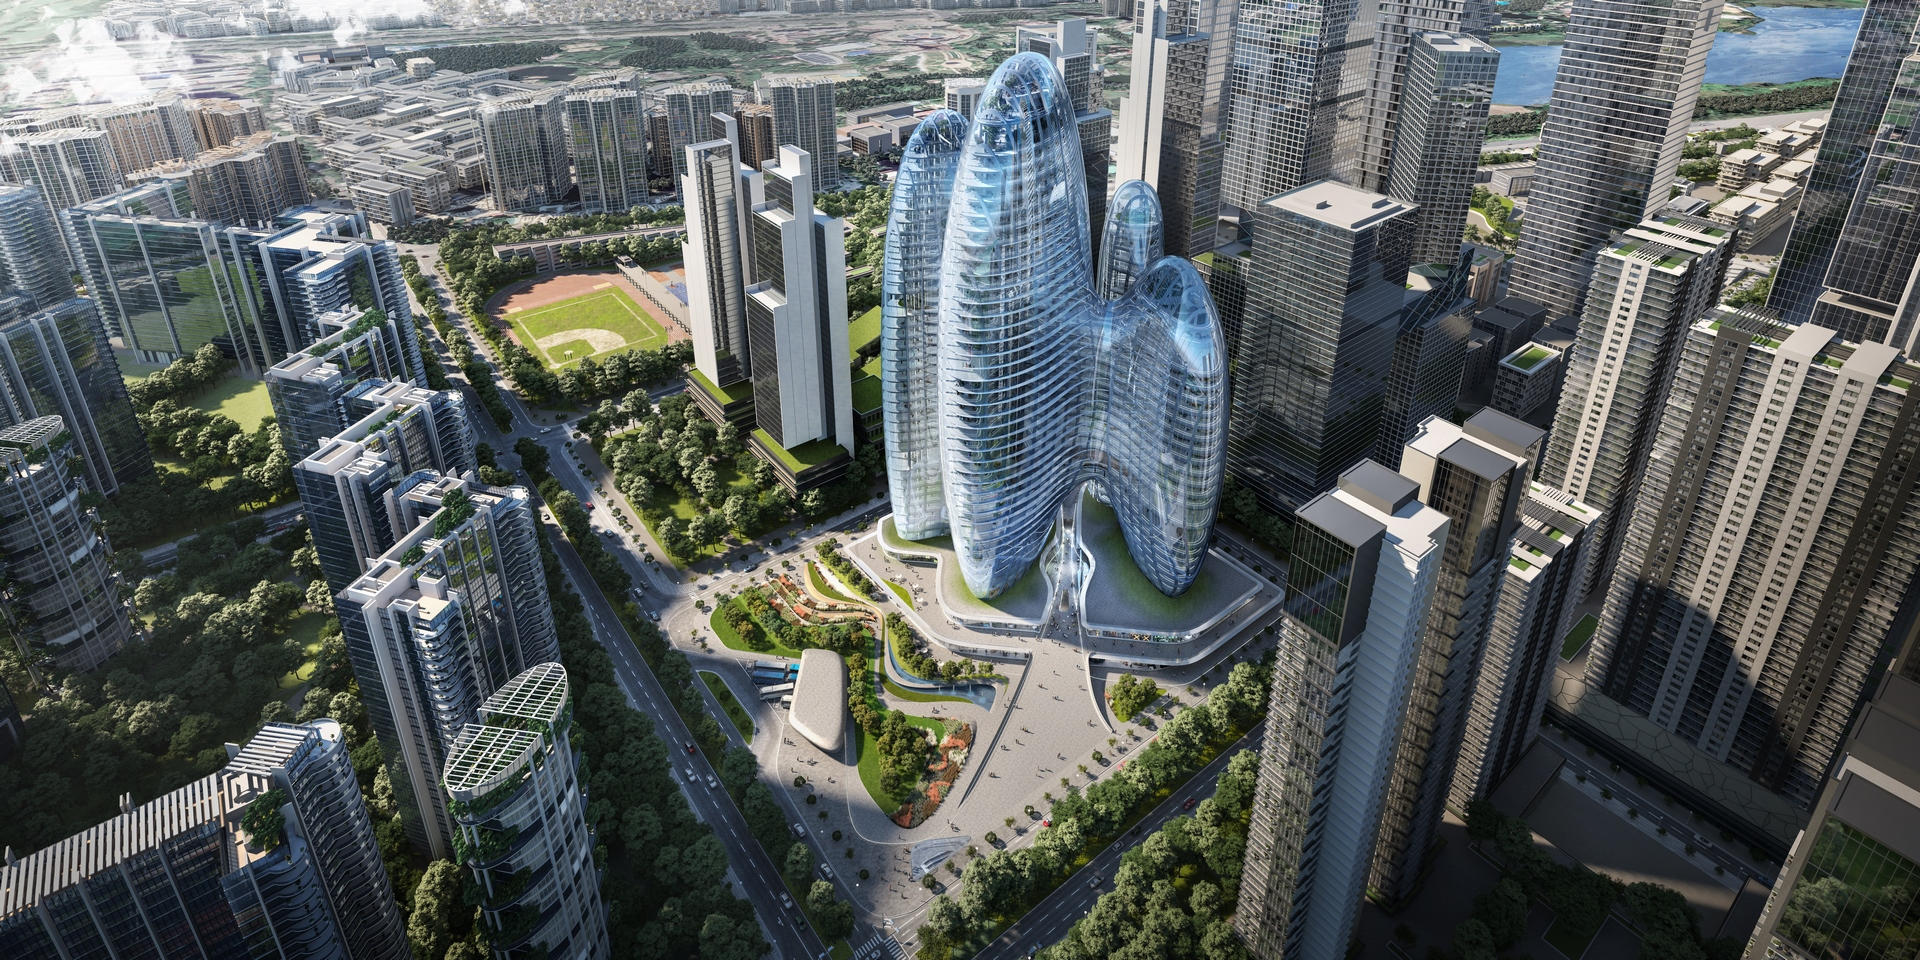 Oppo - Zaha Hadid Architects